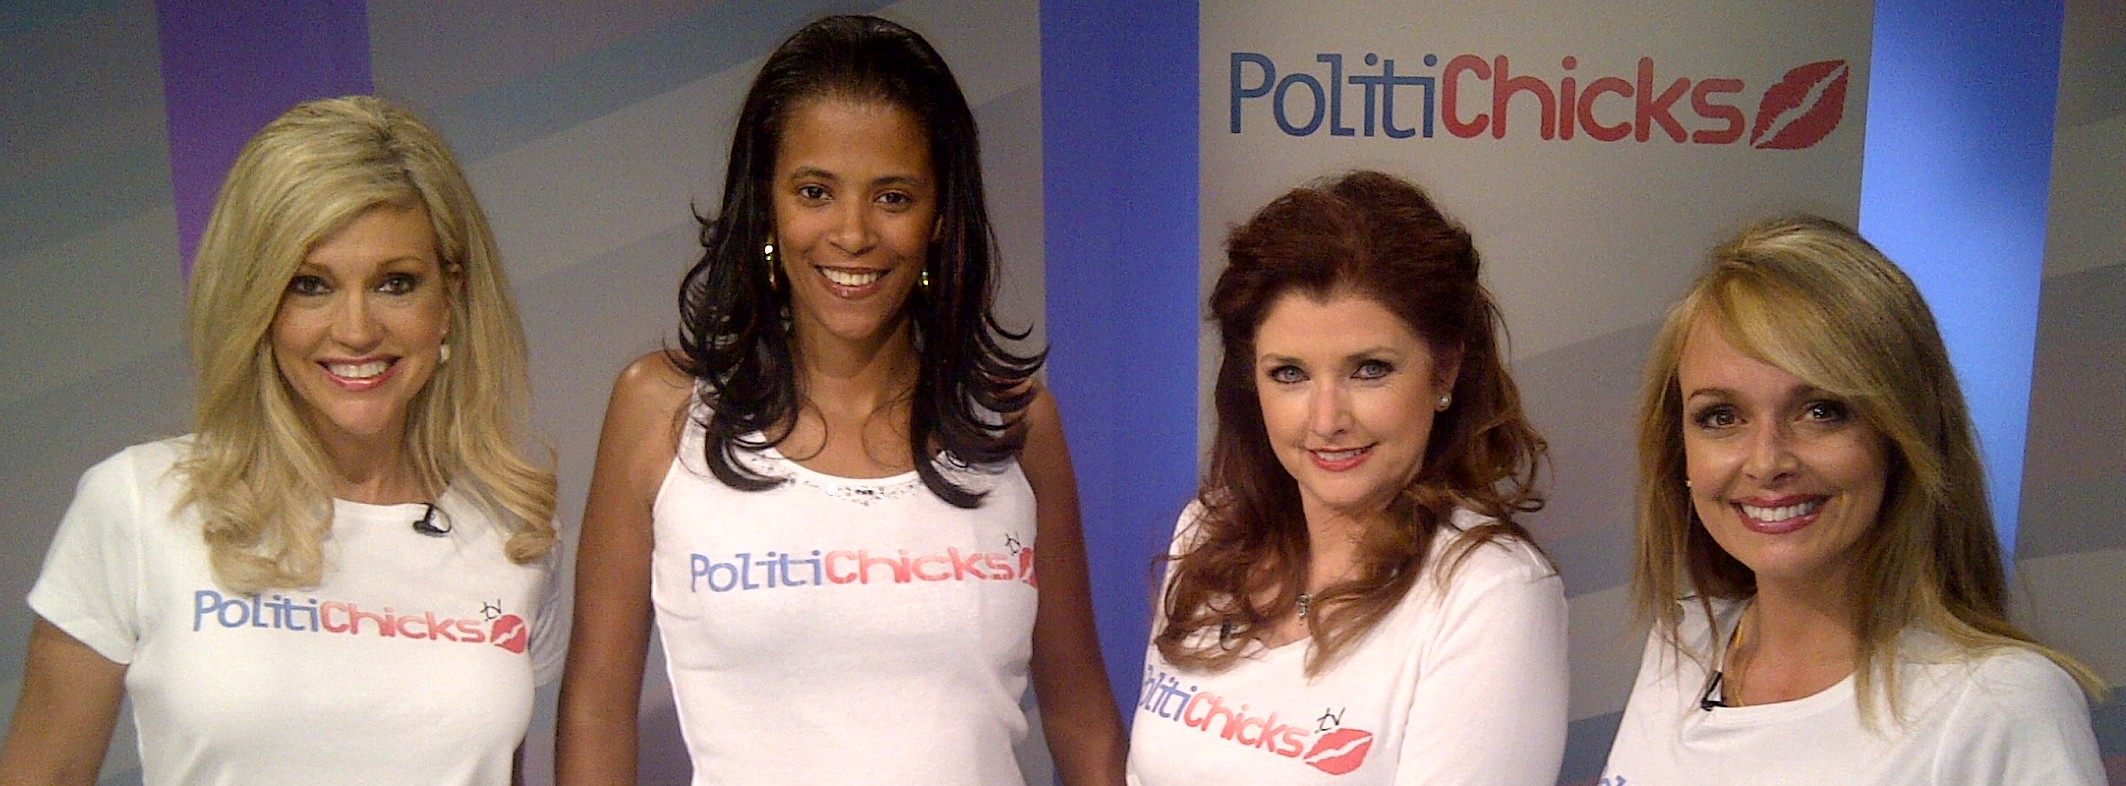 Photo of Check Out The Latest PolitiChicks Episode with Co-Host Dr. Gina Loudon